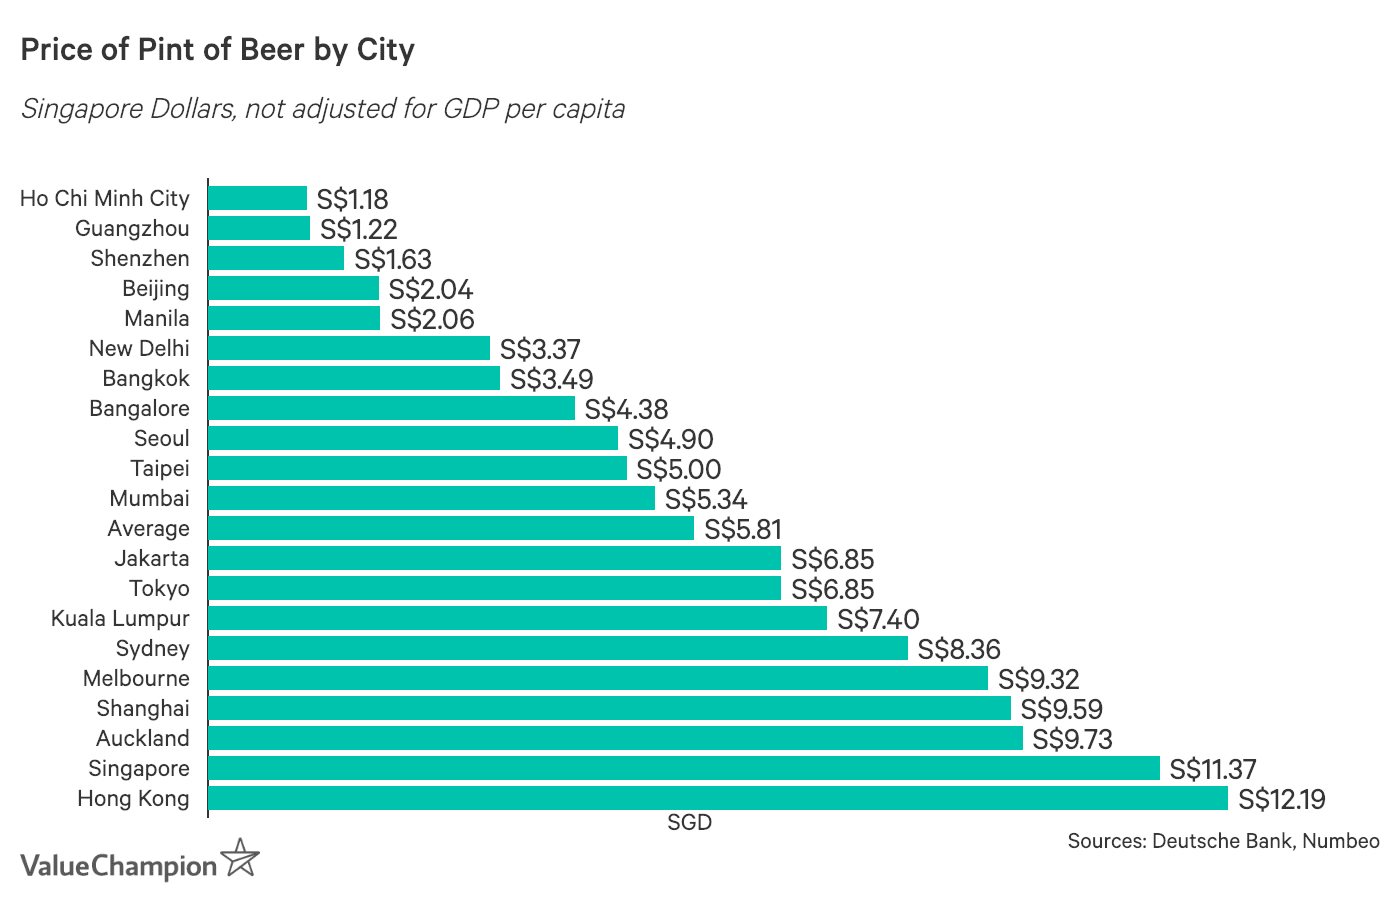 Price of Beer by City